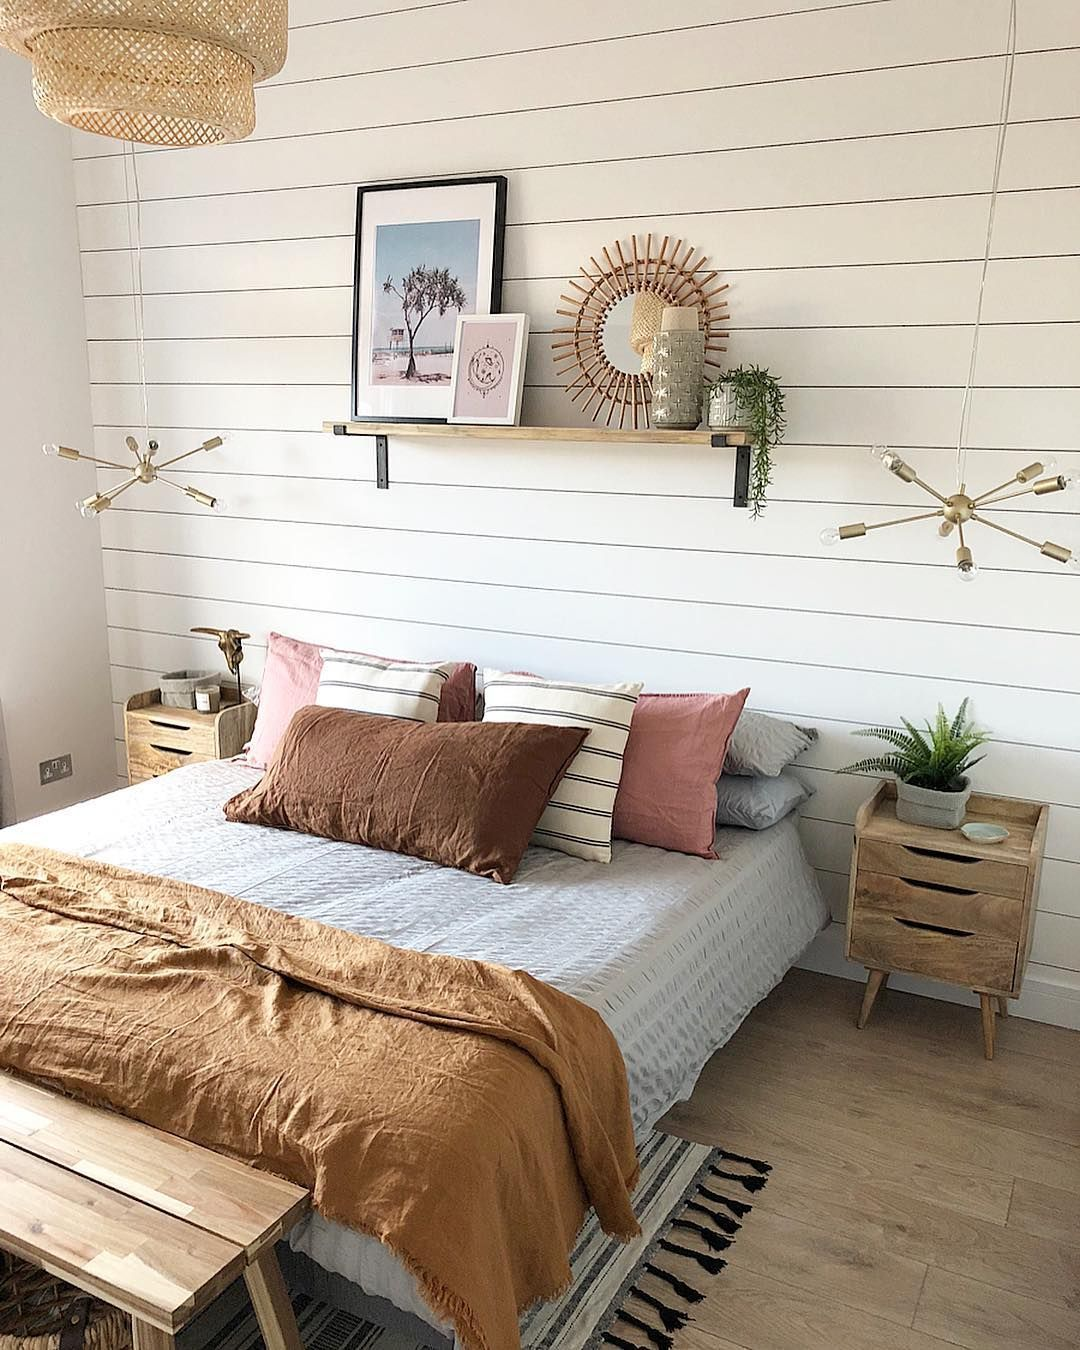 20+ Recommended Small Bedroom Ideas 2019 #smallbedroomideas small bedroom decor ideas, bedroom decor for couples small, small room decorating, small bedroom, small spaces bedroom, small bedrooms ideas, decorate a small bedroom, paint for small spaces, small spare bedroom ideas #bedroomideasforsmallroomsforcouples